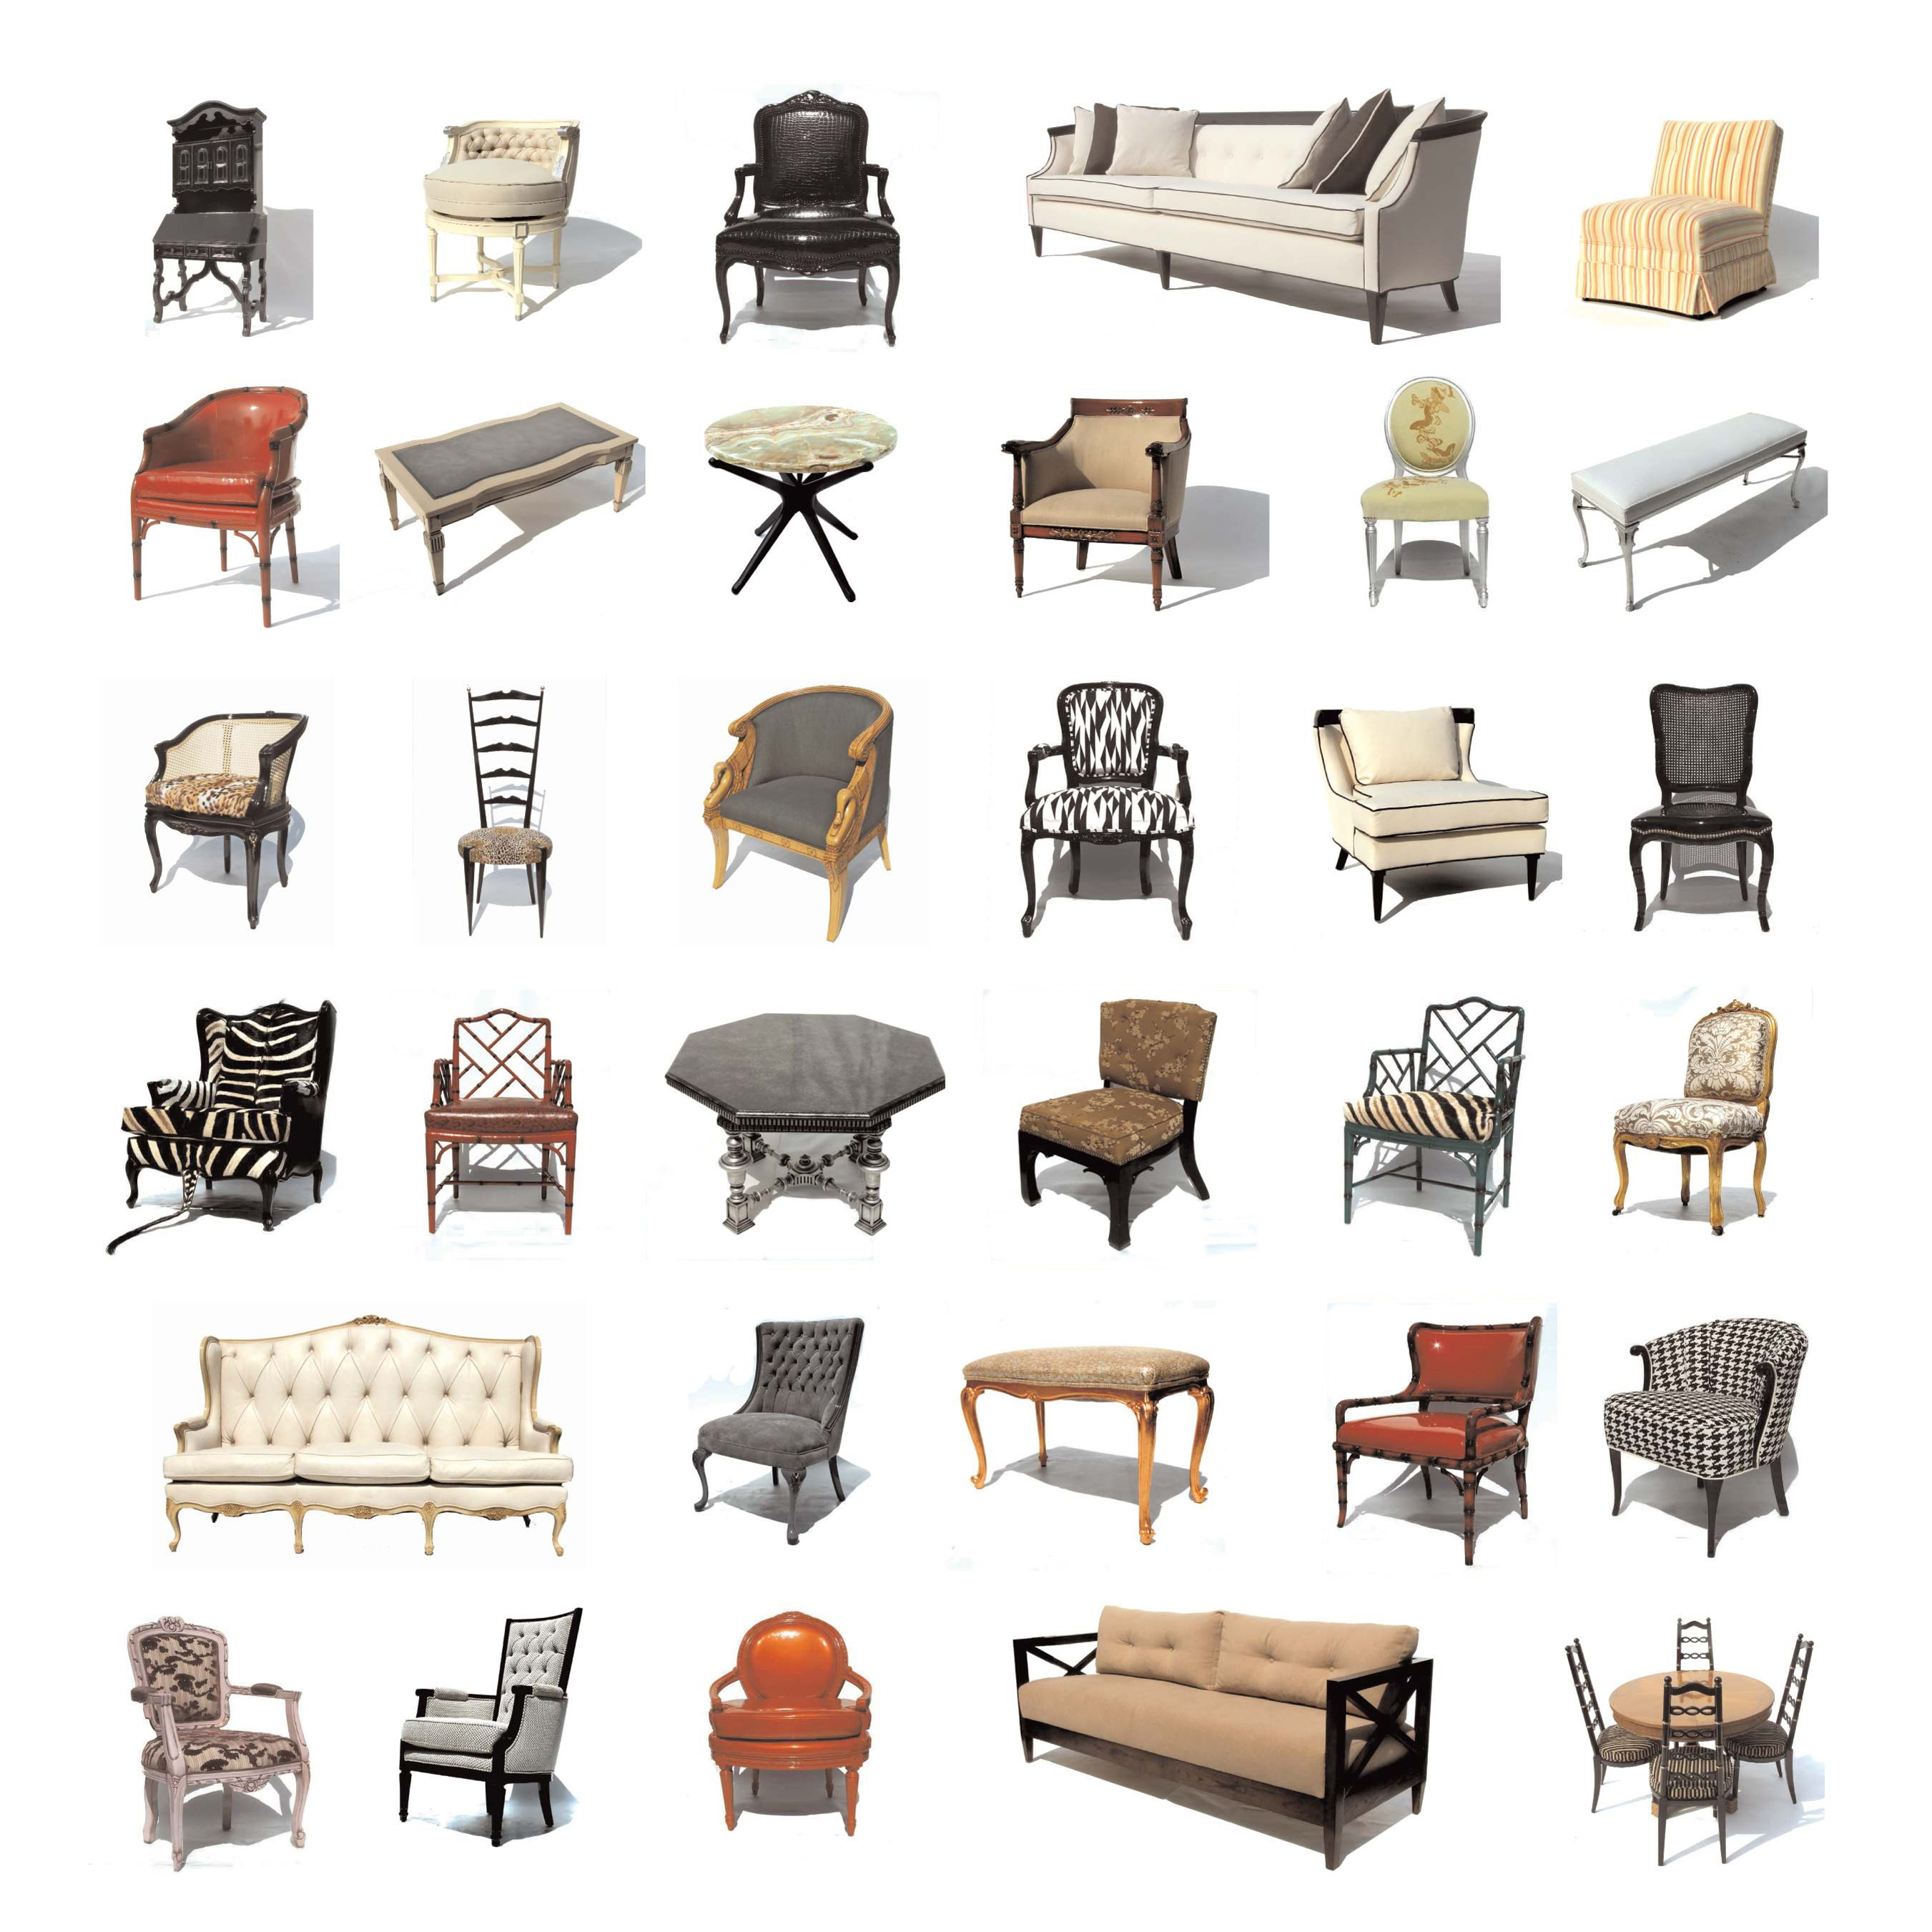 Styles Of Chairs Furniture Styles From The 1930 39s 1950 39s House In 2019